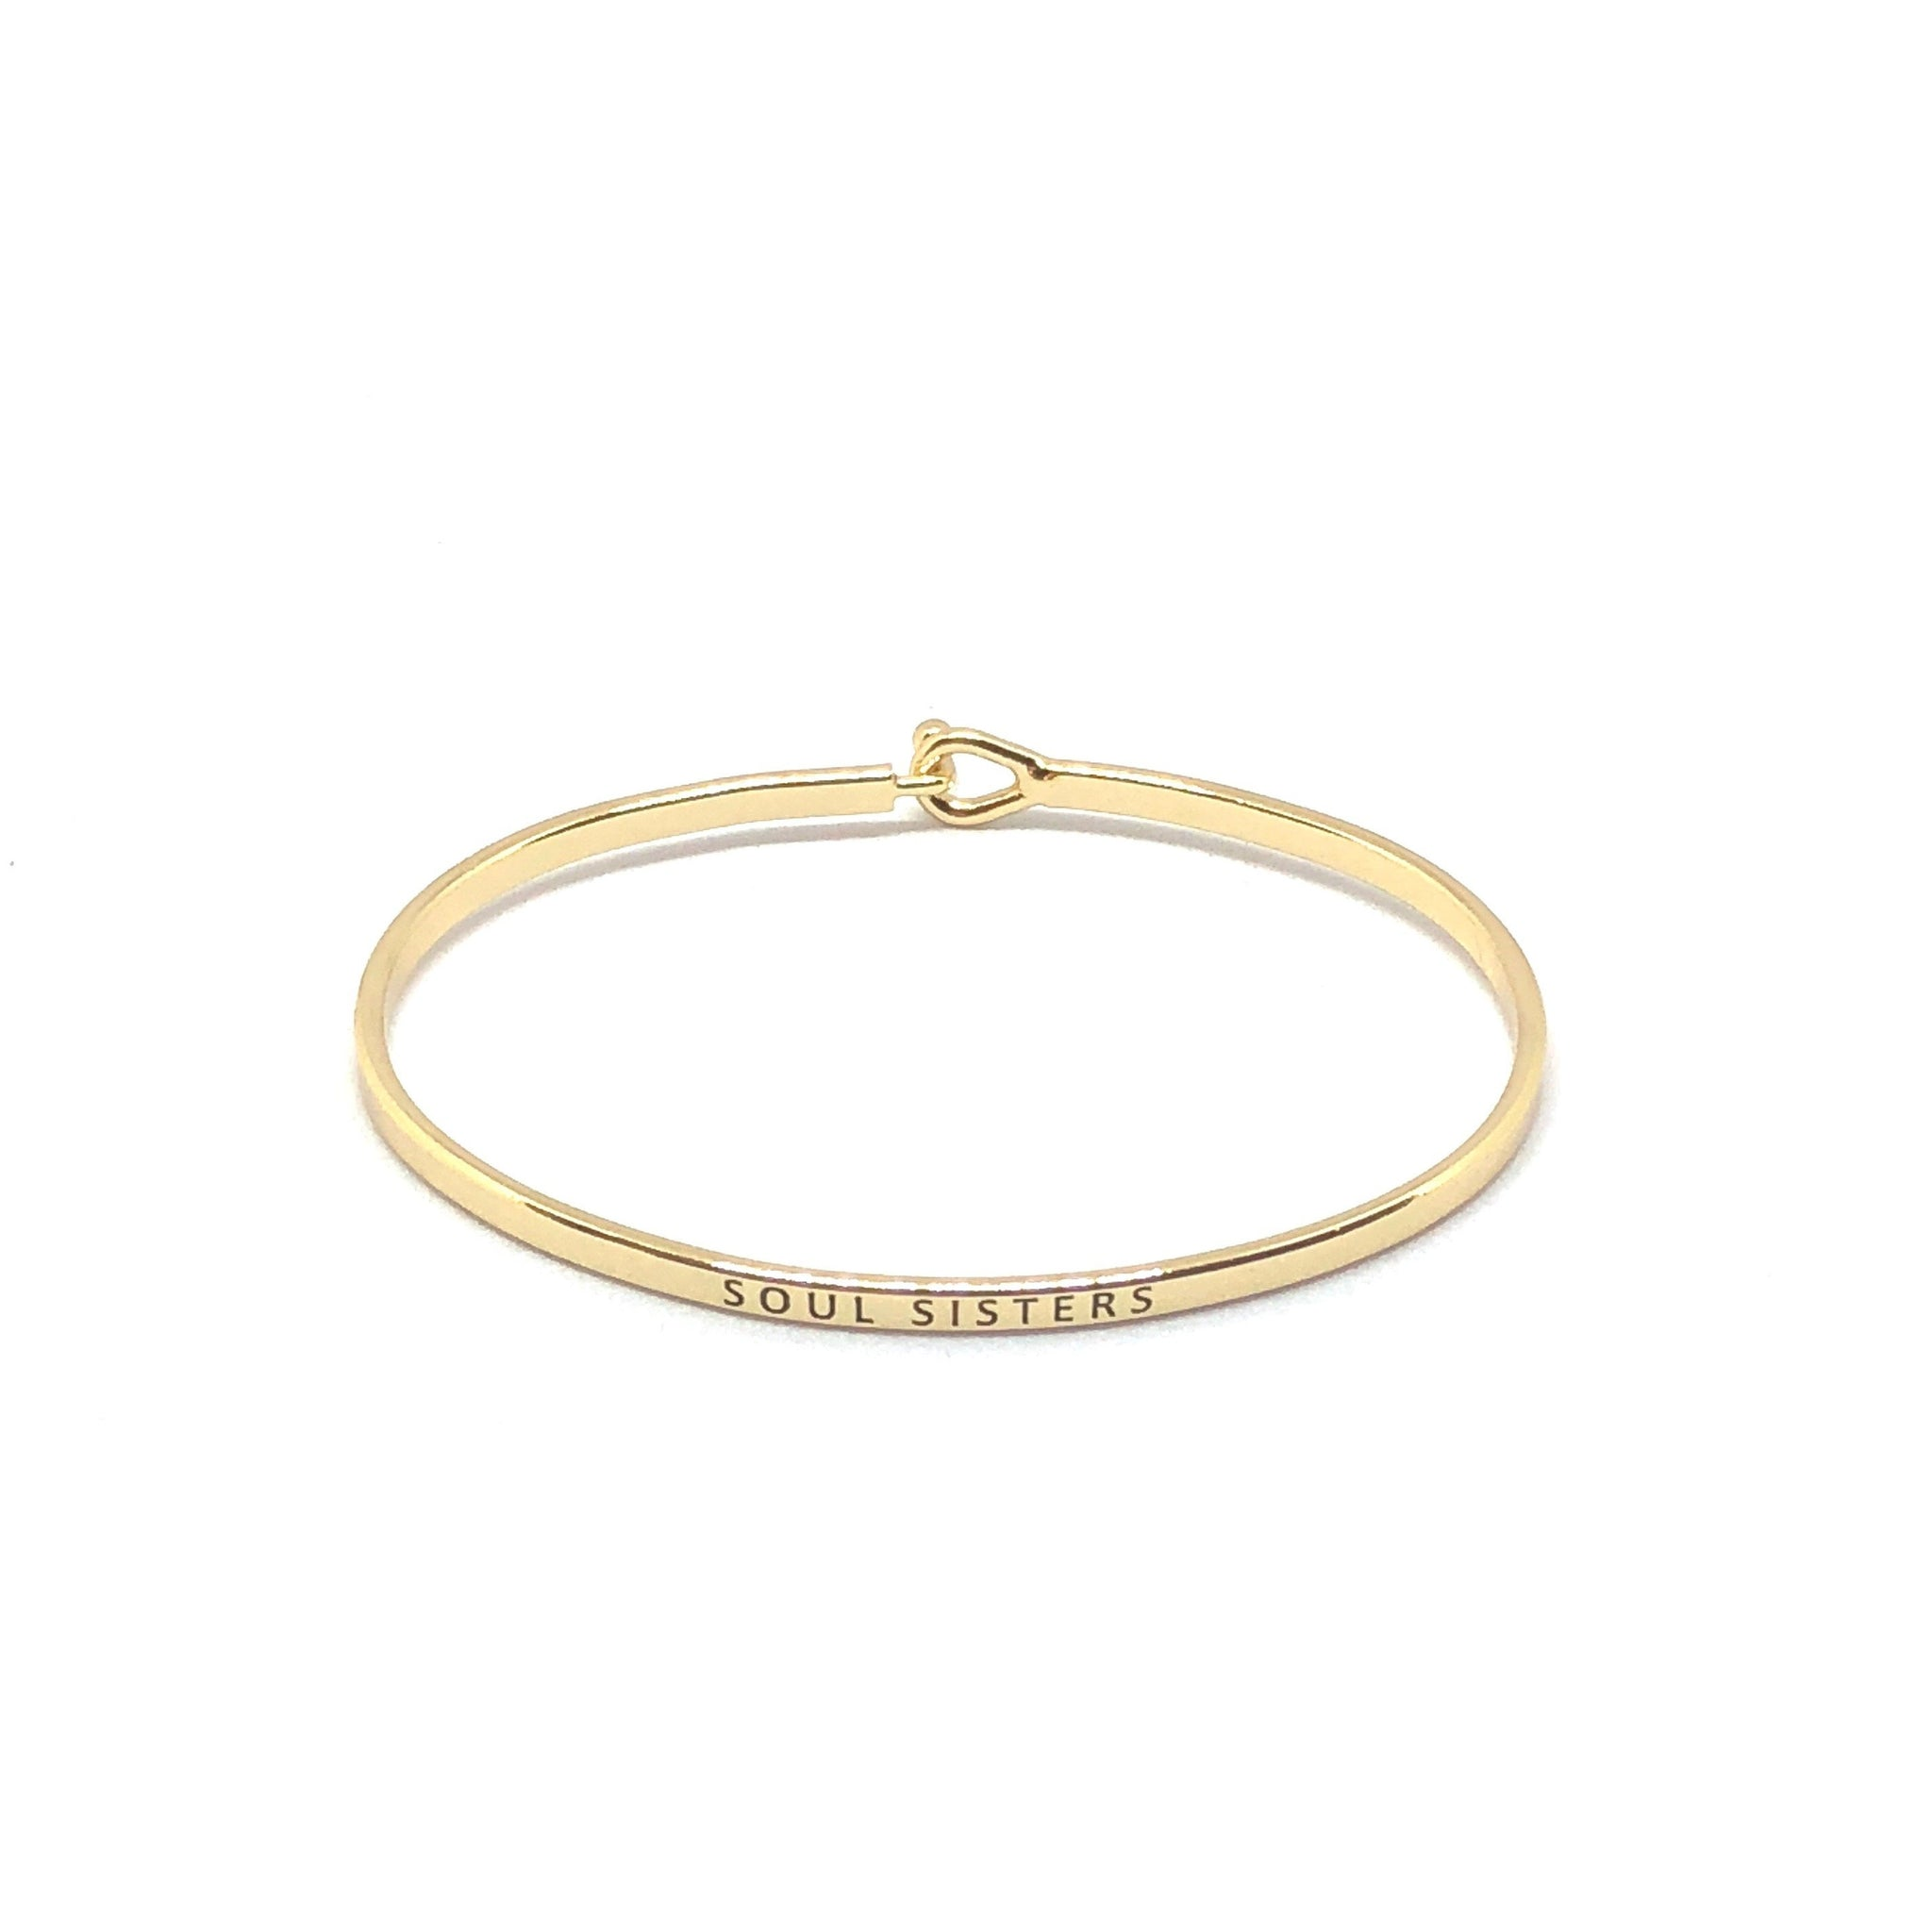 Soul Sisters Inspirational Bangle - SPREE